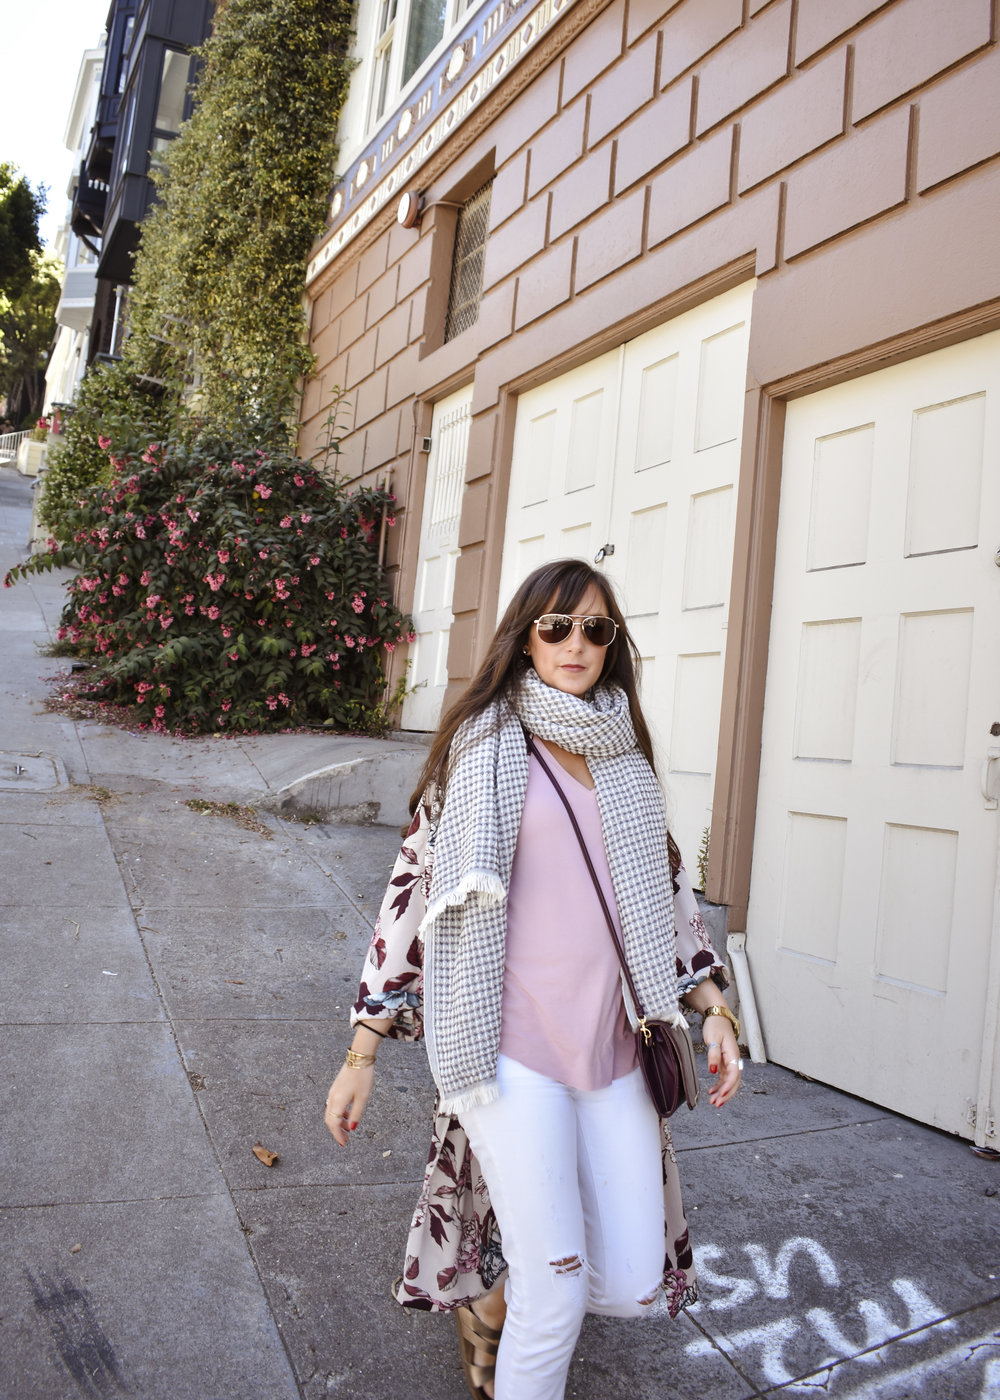 jenn took her style staples on a trip to san francisco and fit right in with the gorgeous architecture and greenery. shop her favorites;the  FLORAL KIMONO ,  FAVORITE TANK , and  SUNA THROW .